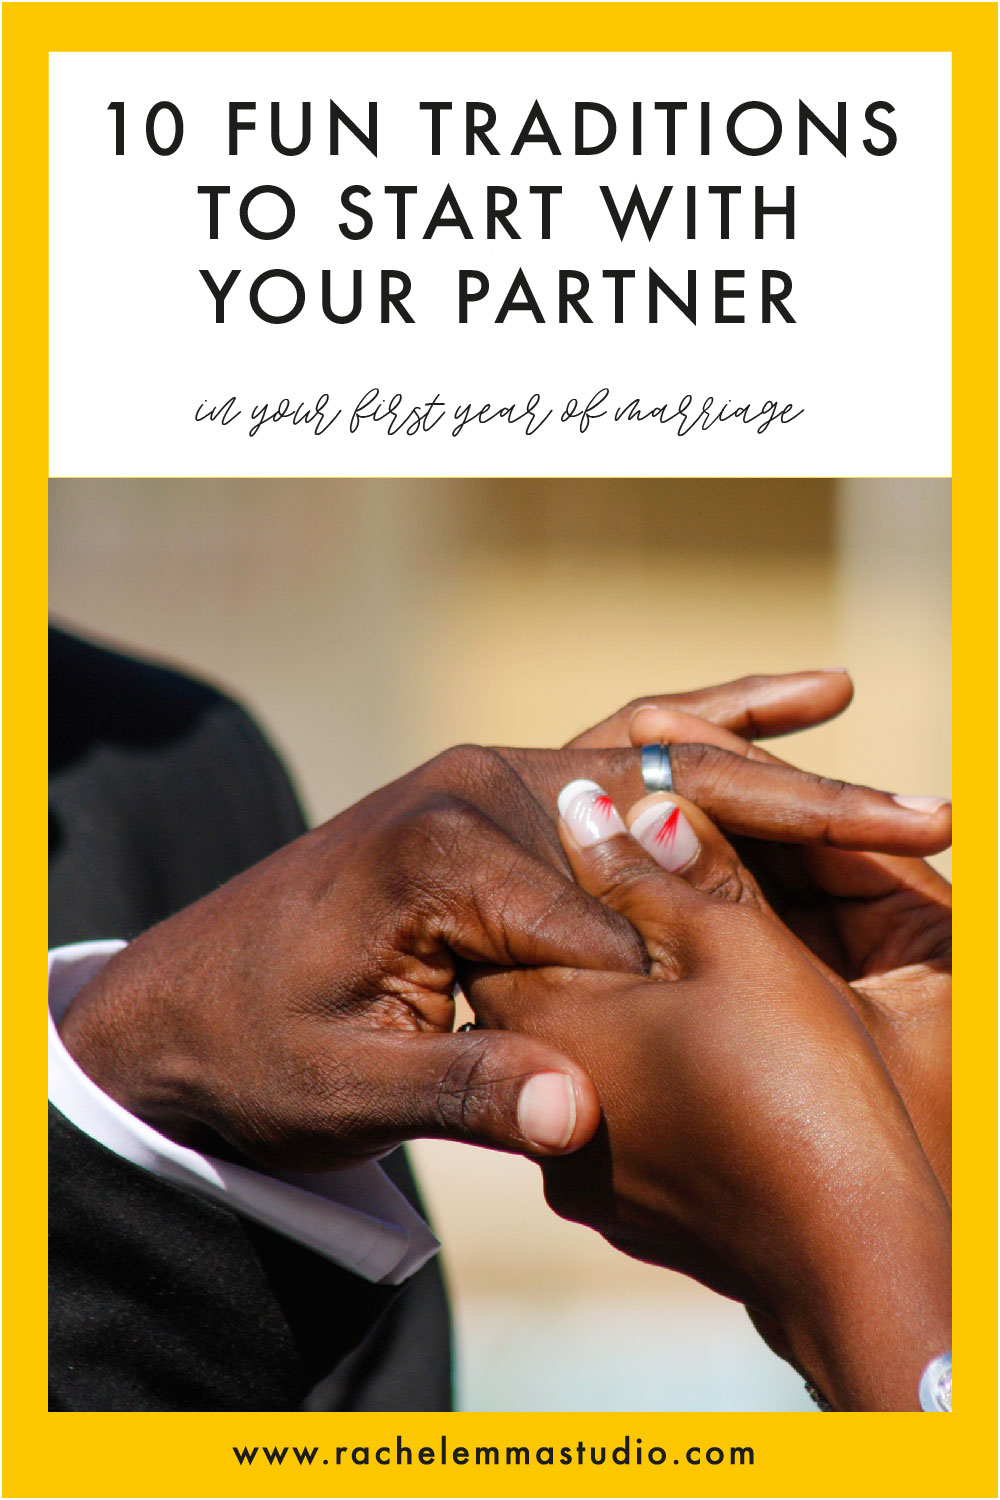 10 traditions to start with your partner